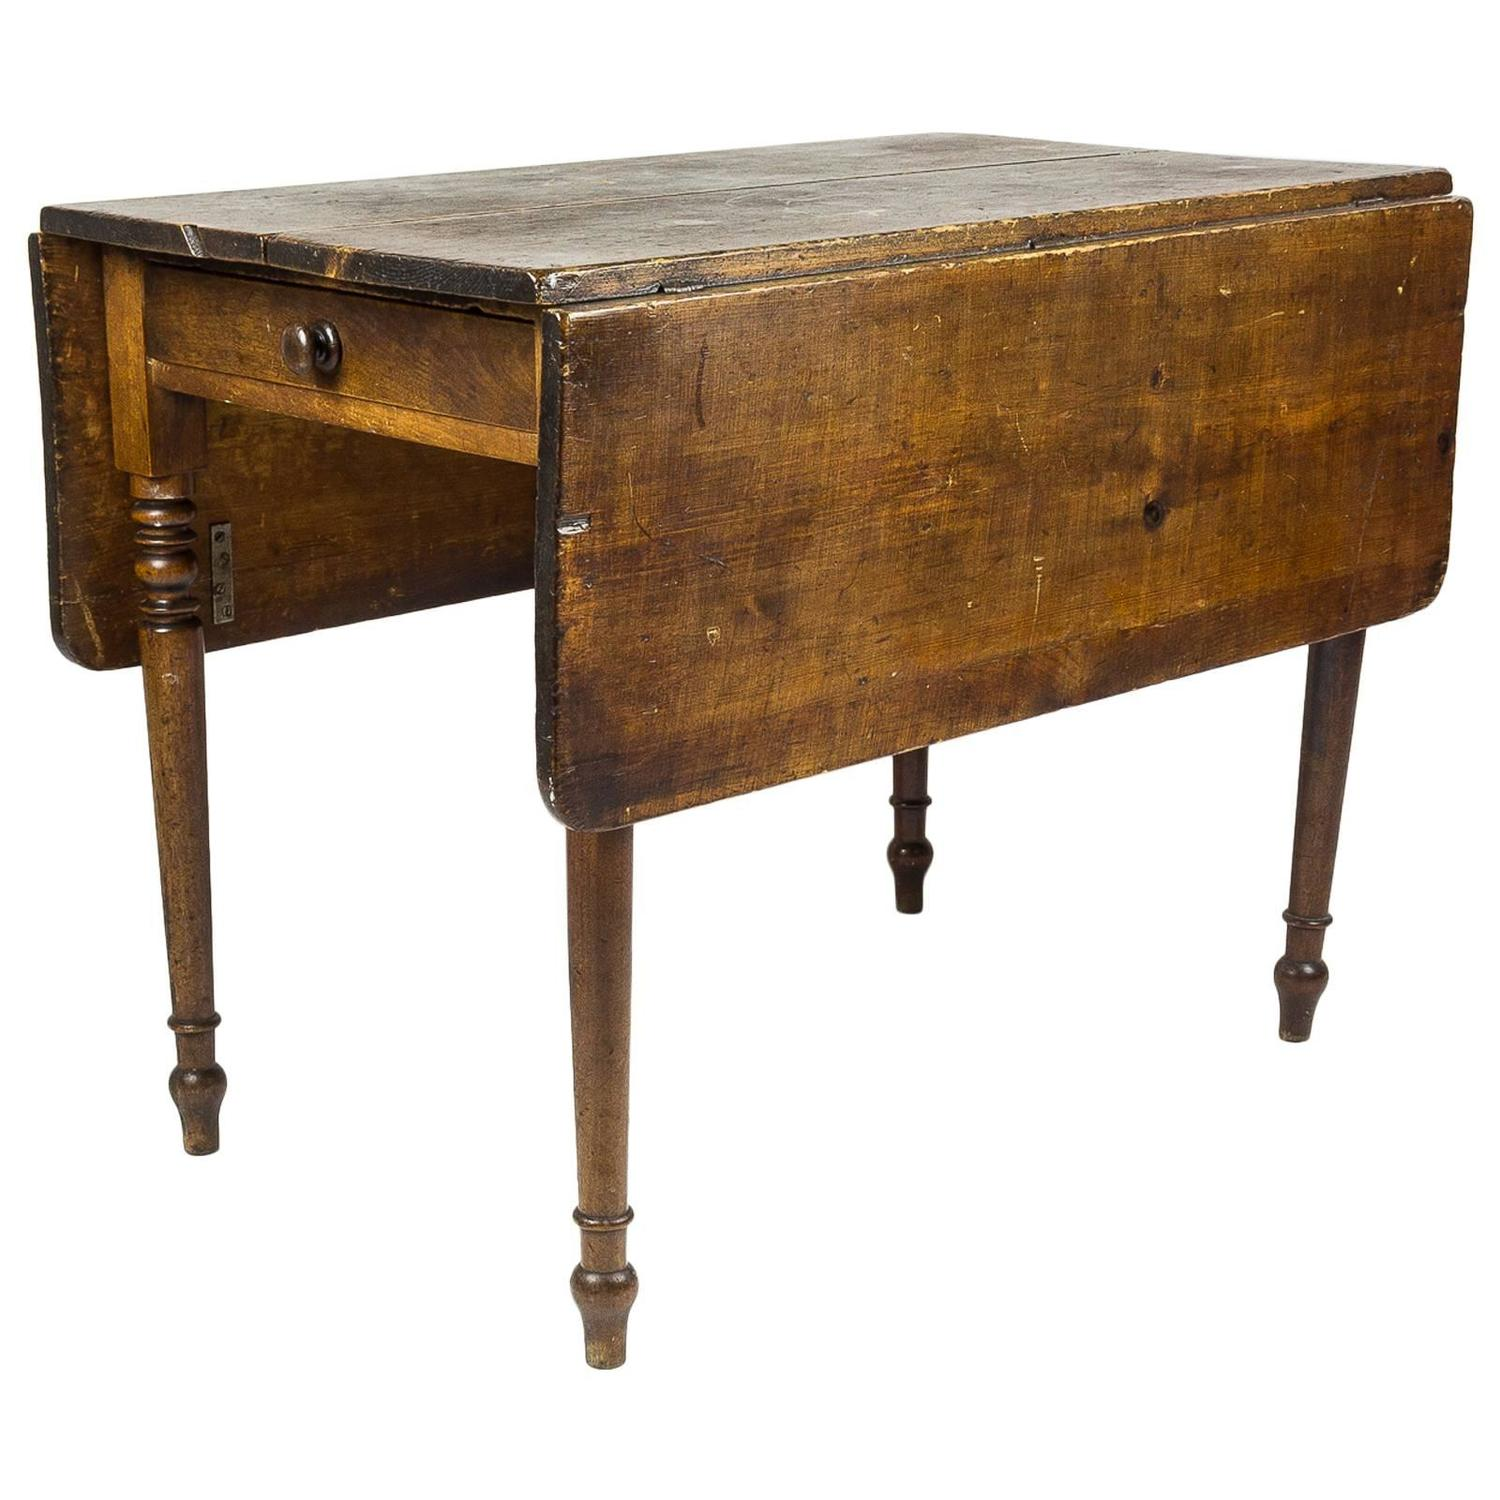 Edwardian drop leaf kitchen table at 1stdibs for Kitchen furniture images